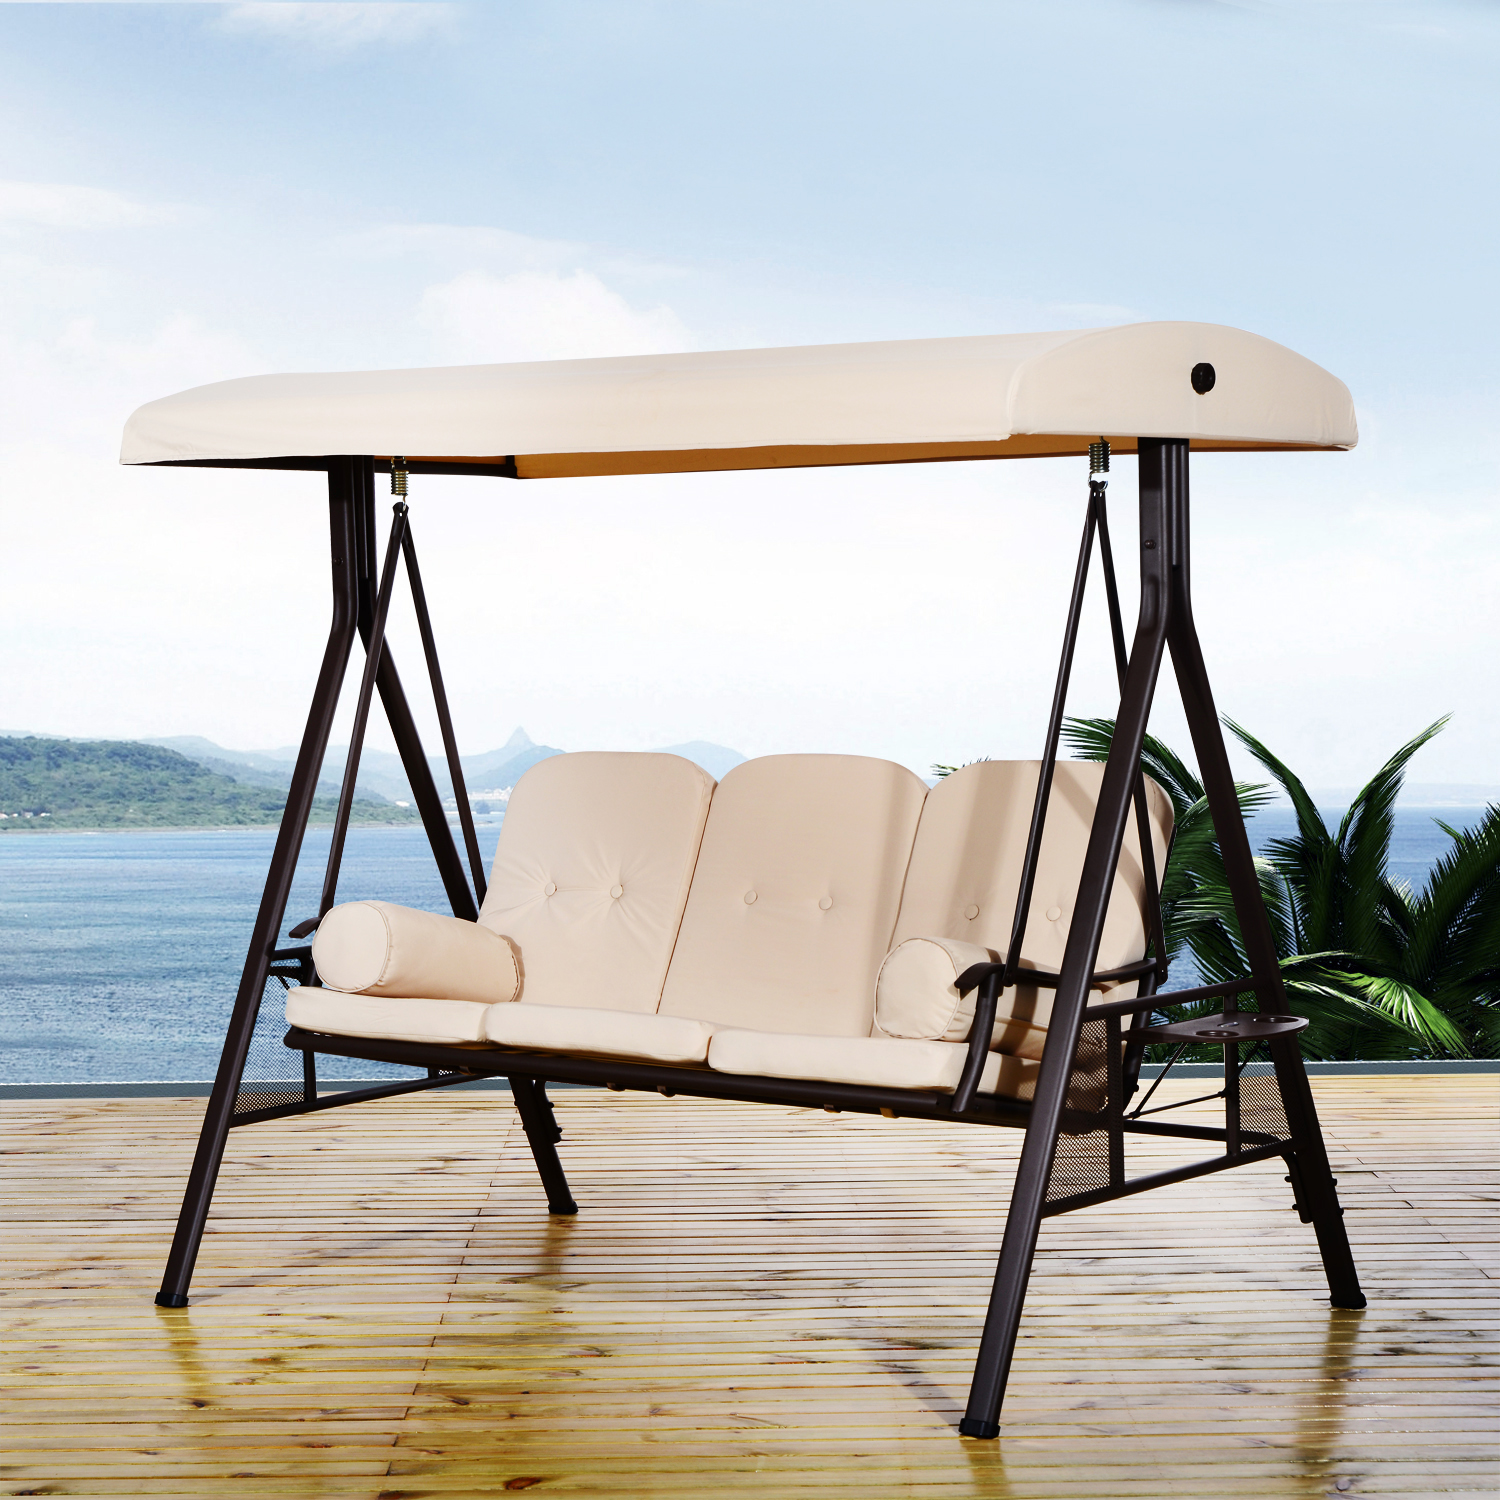 Image of CAD $429.99 Outsunny Swing Chair Lounge Canopy Outdoor 3 Person Garden Balcony Furniture / Heavy-duty Seater Covered Lounger Hammock with Cushion Tilt and Pillows Beige Cushioned Seat w/ Canada 46655328830